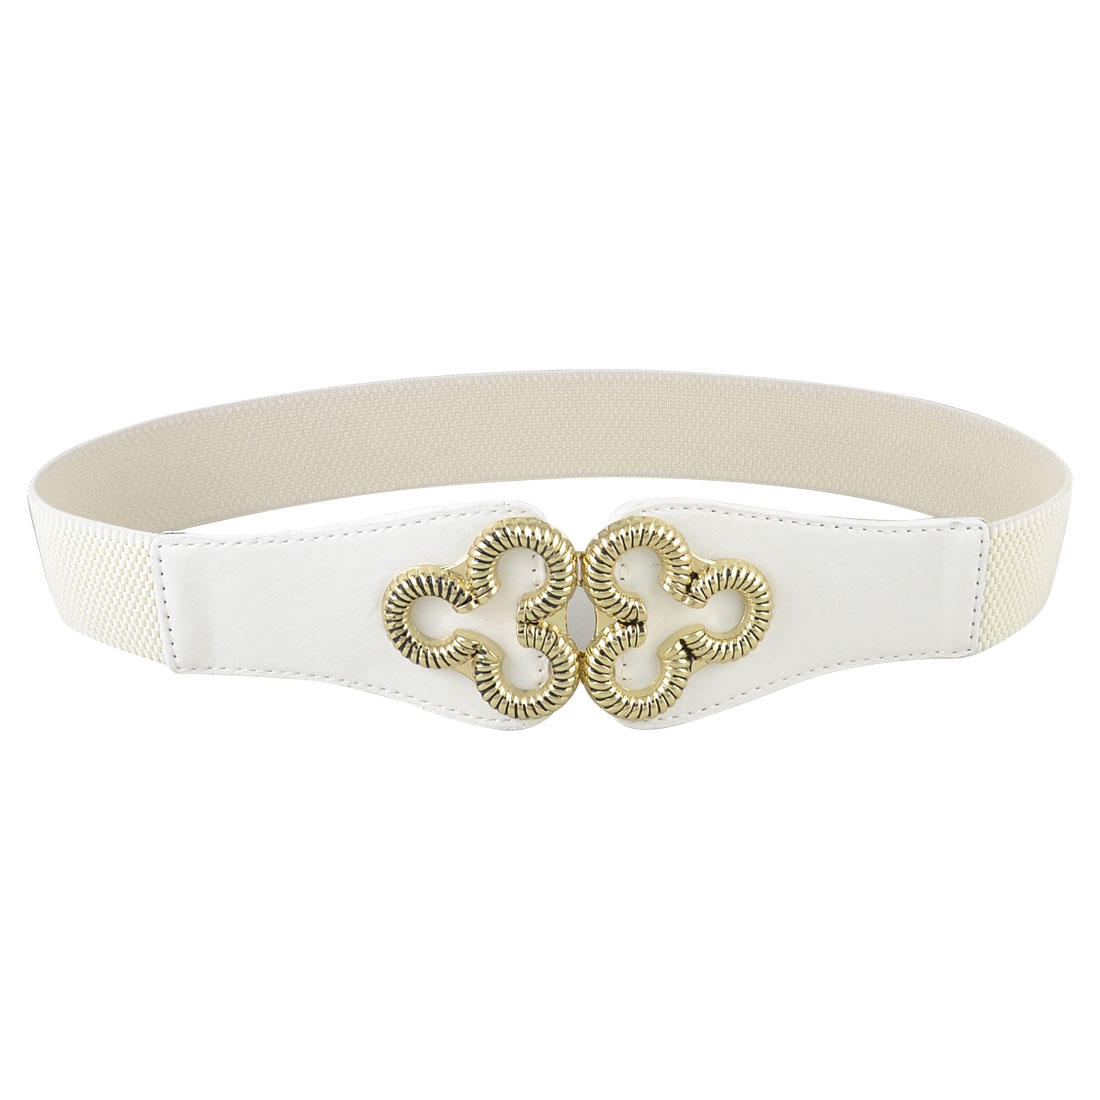 Women Floral Interlocking Buckle Faux Leather Stretchy Cinch Waist Belt White